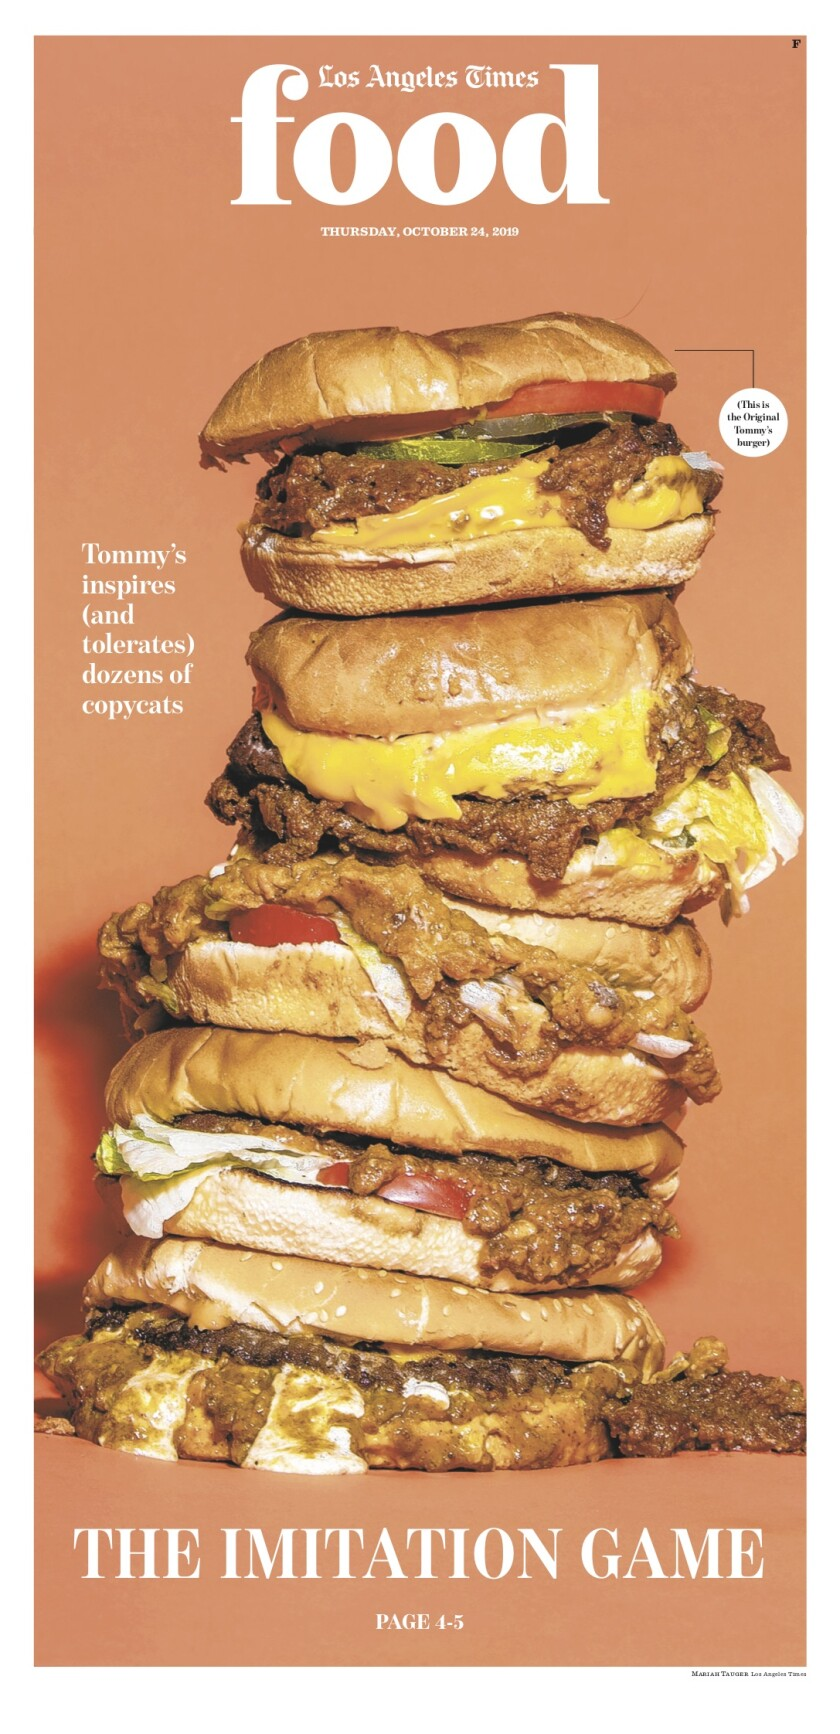 Los Angeles Times Food cover, October 24, 2019